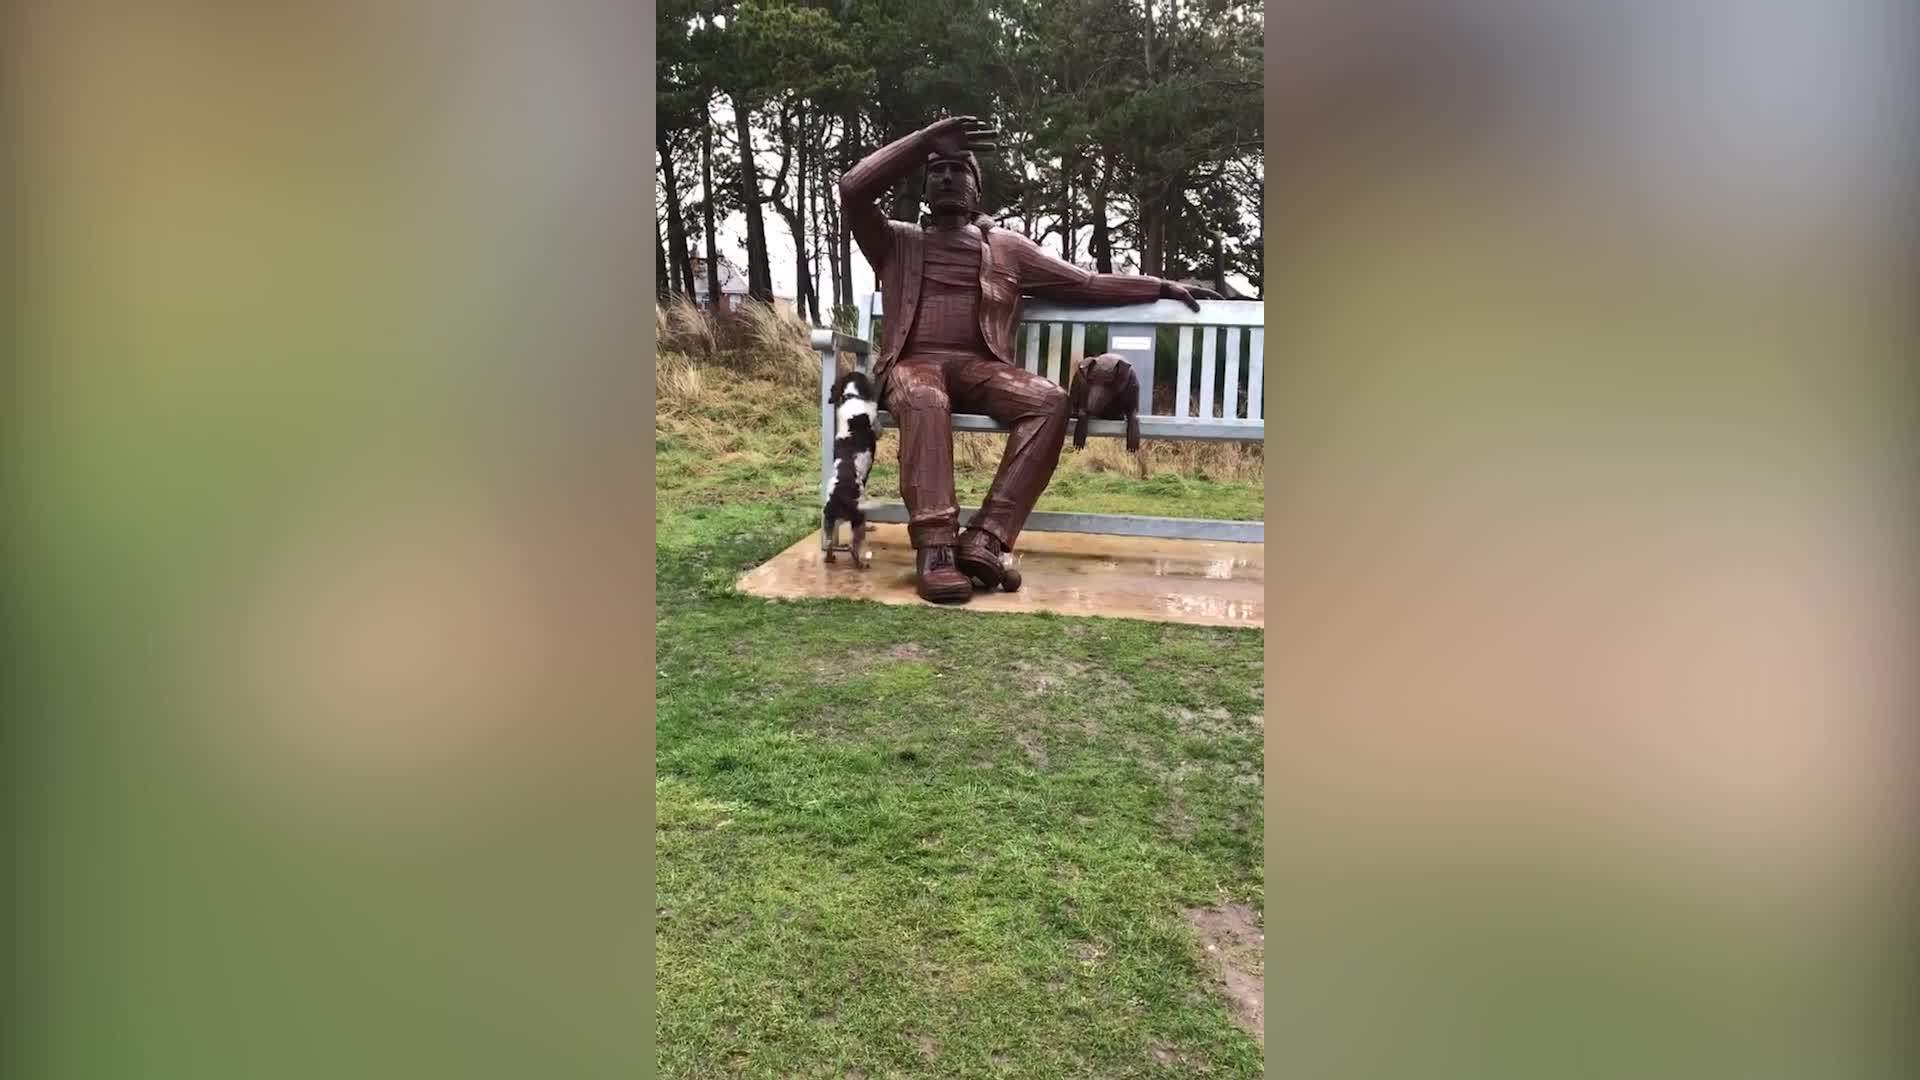 Hilarious video shows a dog pestering a giant STATUE to throw its ball!